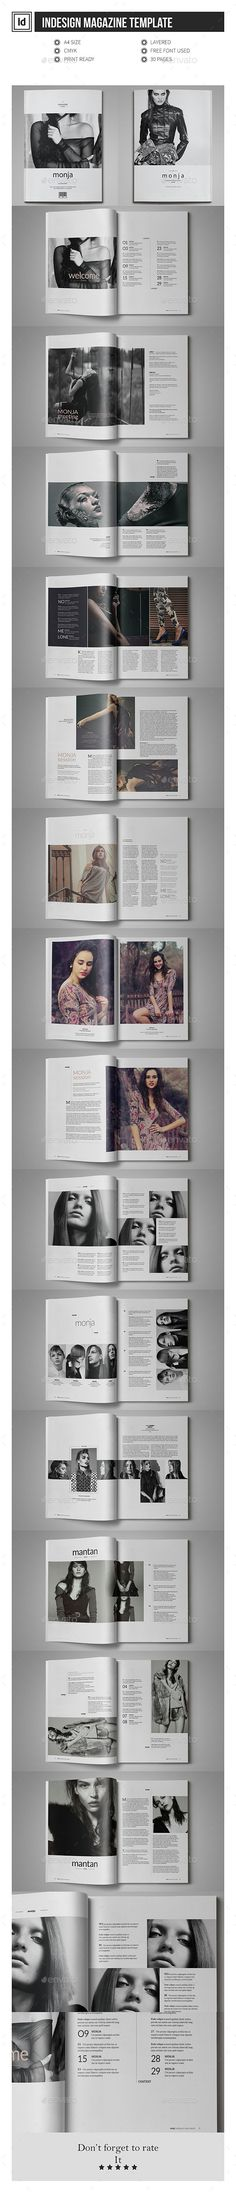 Multipurpose InDesign Magazine Template #design Download: http://graphicriver.net/item/multipurpose-indesign-magazine-template/12046872?ref=ksioks